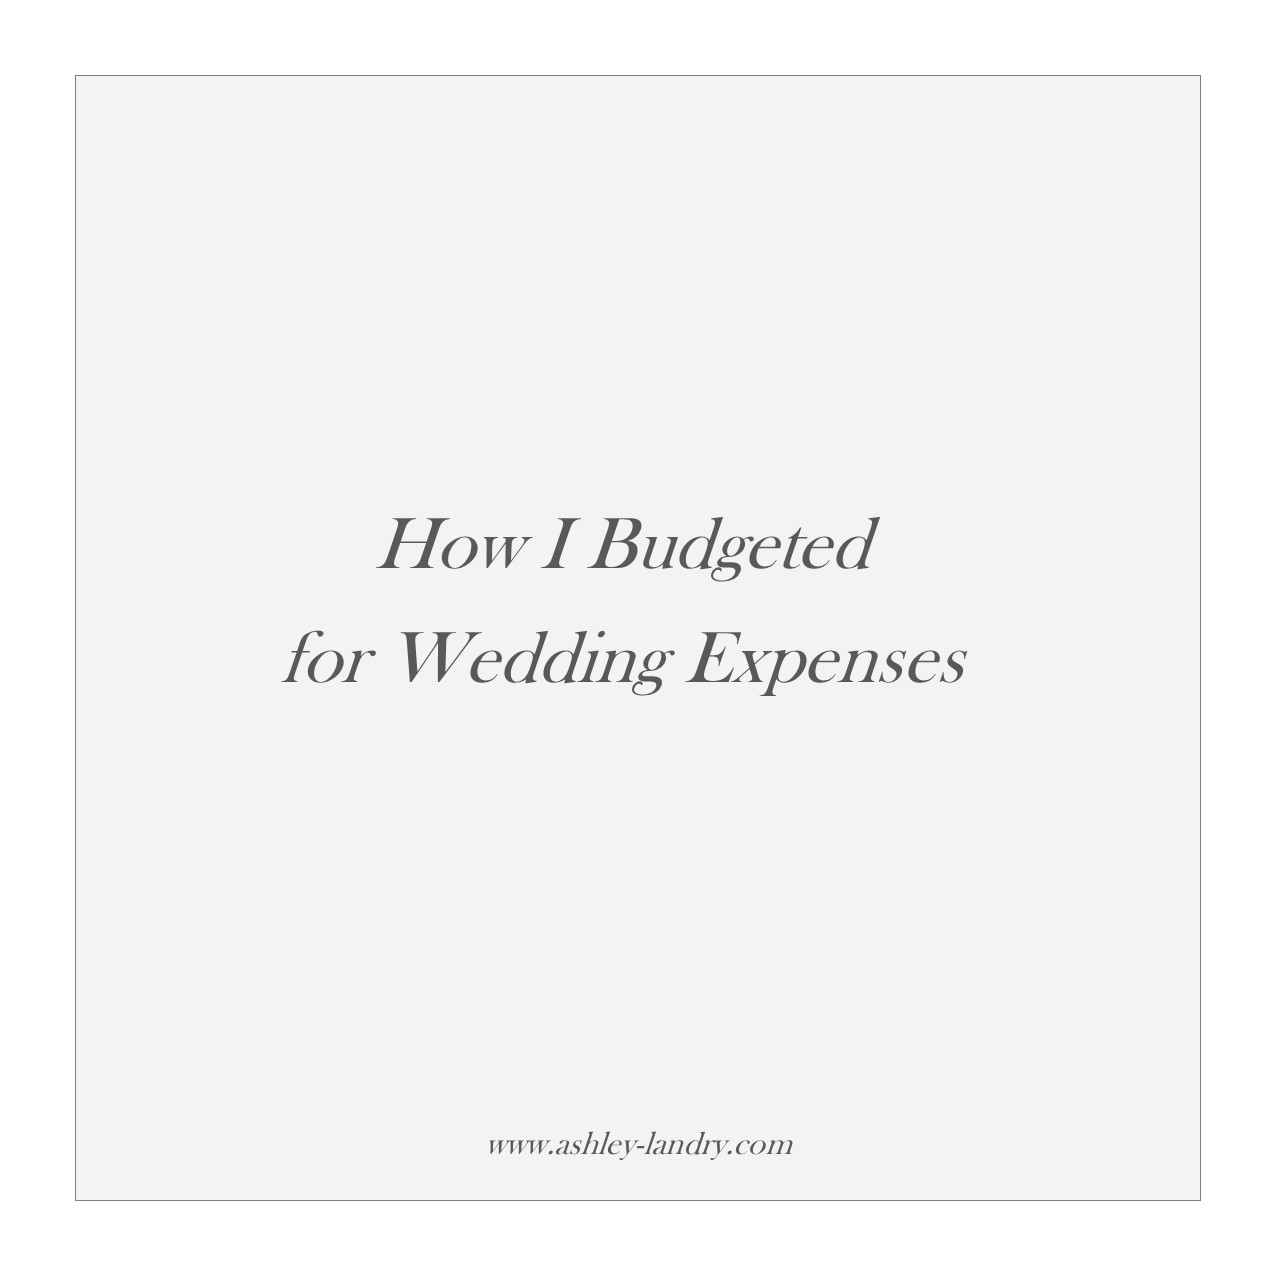 how i budgeted for wedding expenses